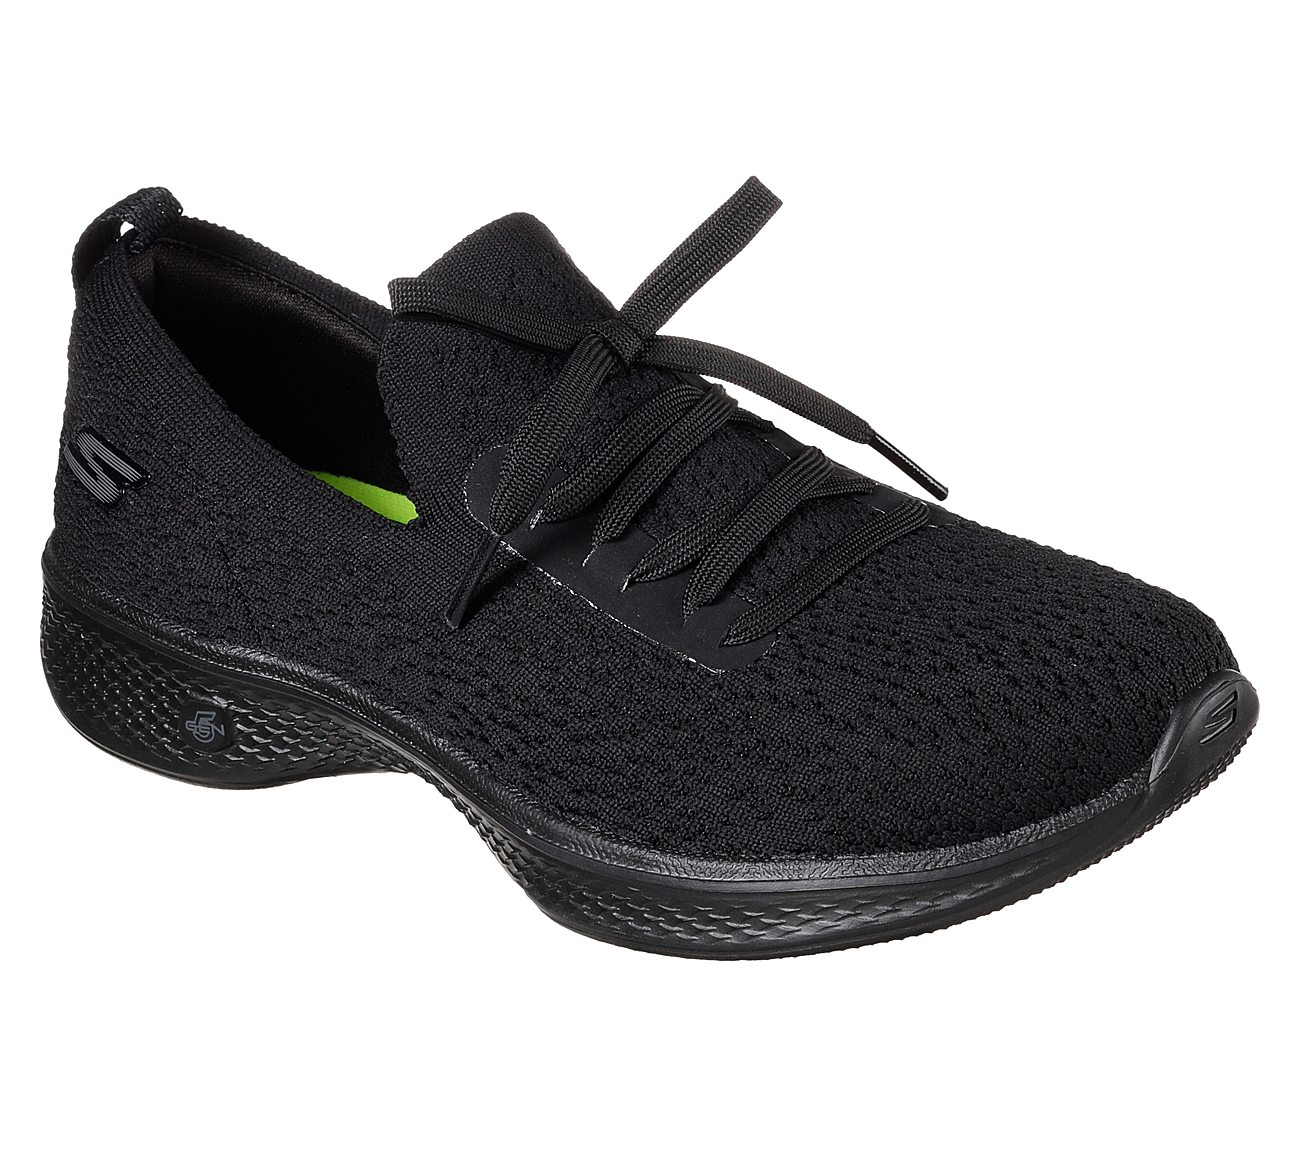 aa0f1730ea82 Buy SKECHERS Skechers GOwalk 4 - Reward Skechers Performance Shoes ...